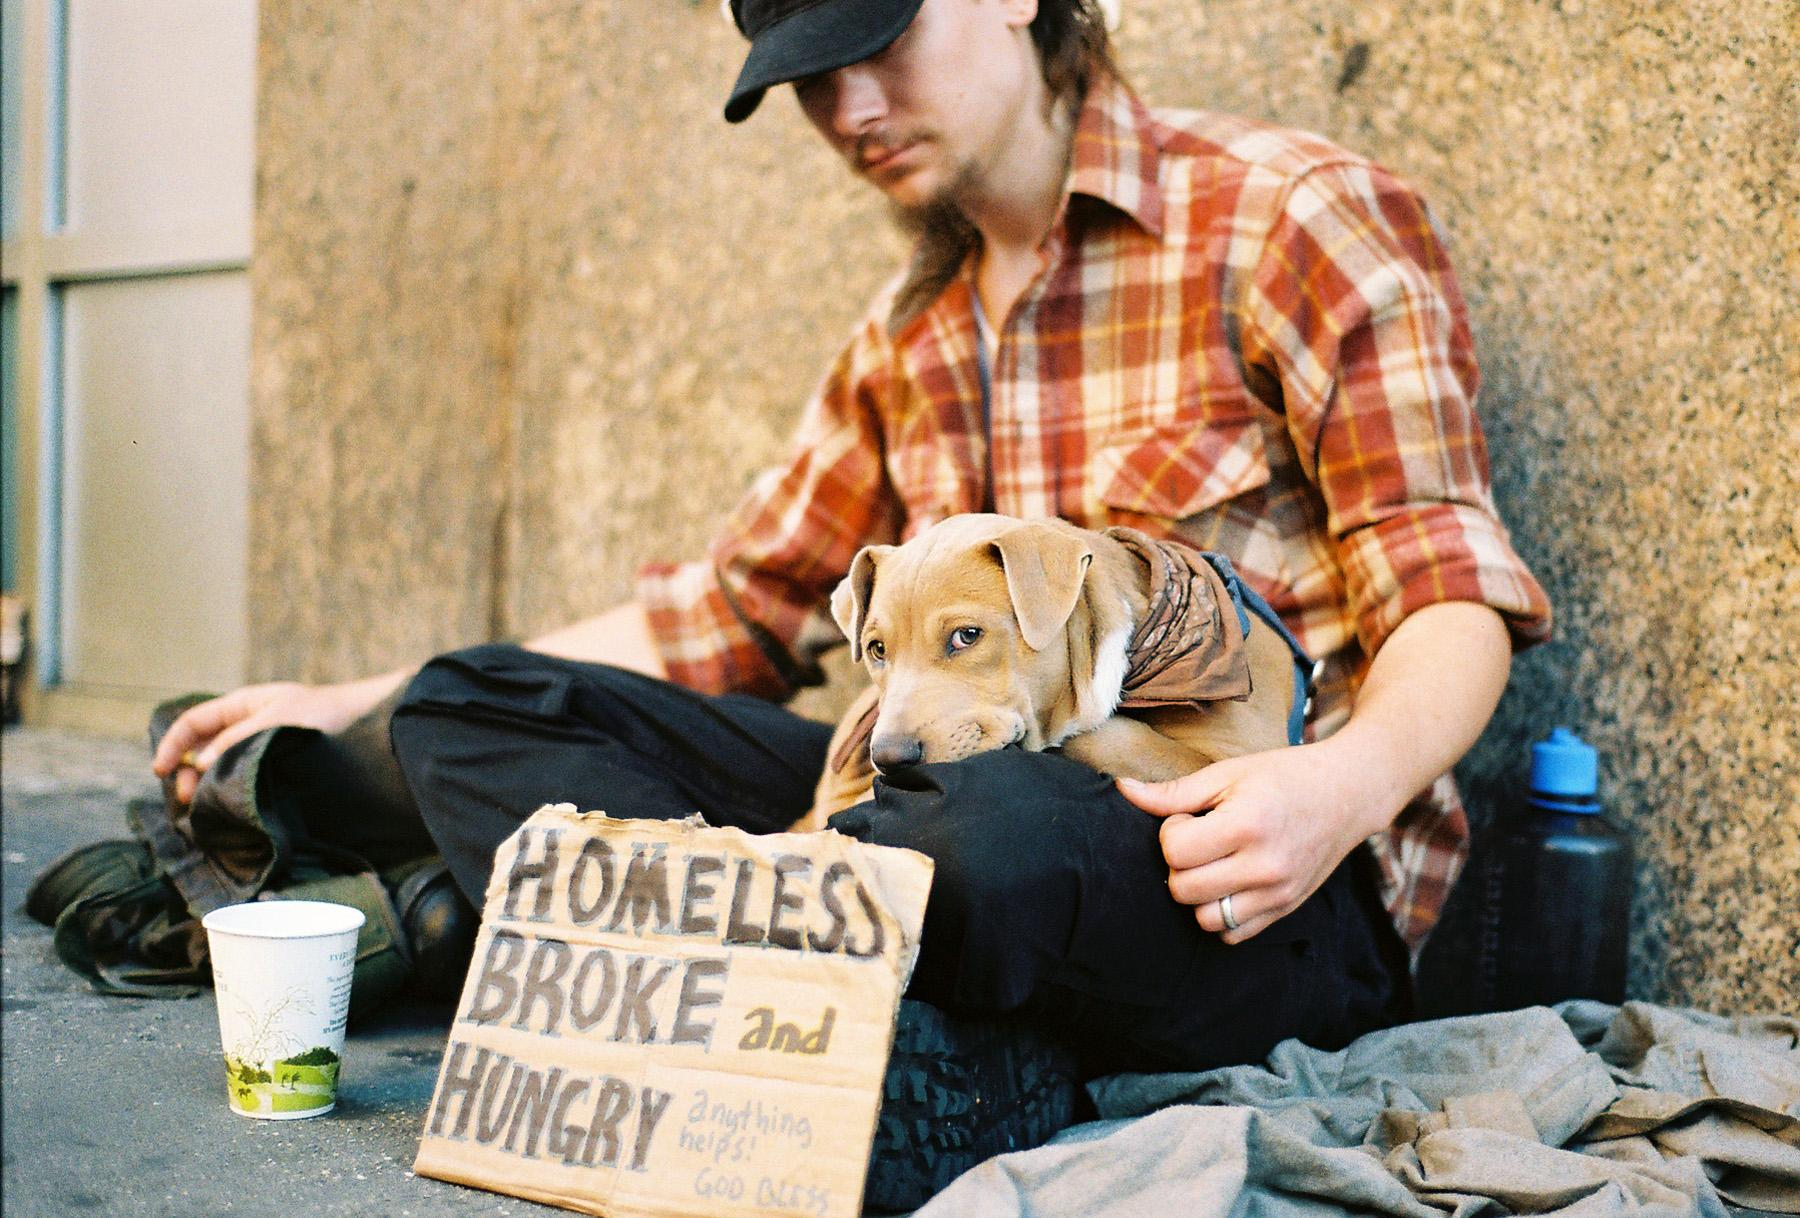 Private shelters evicting disruptive homeless people